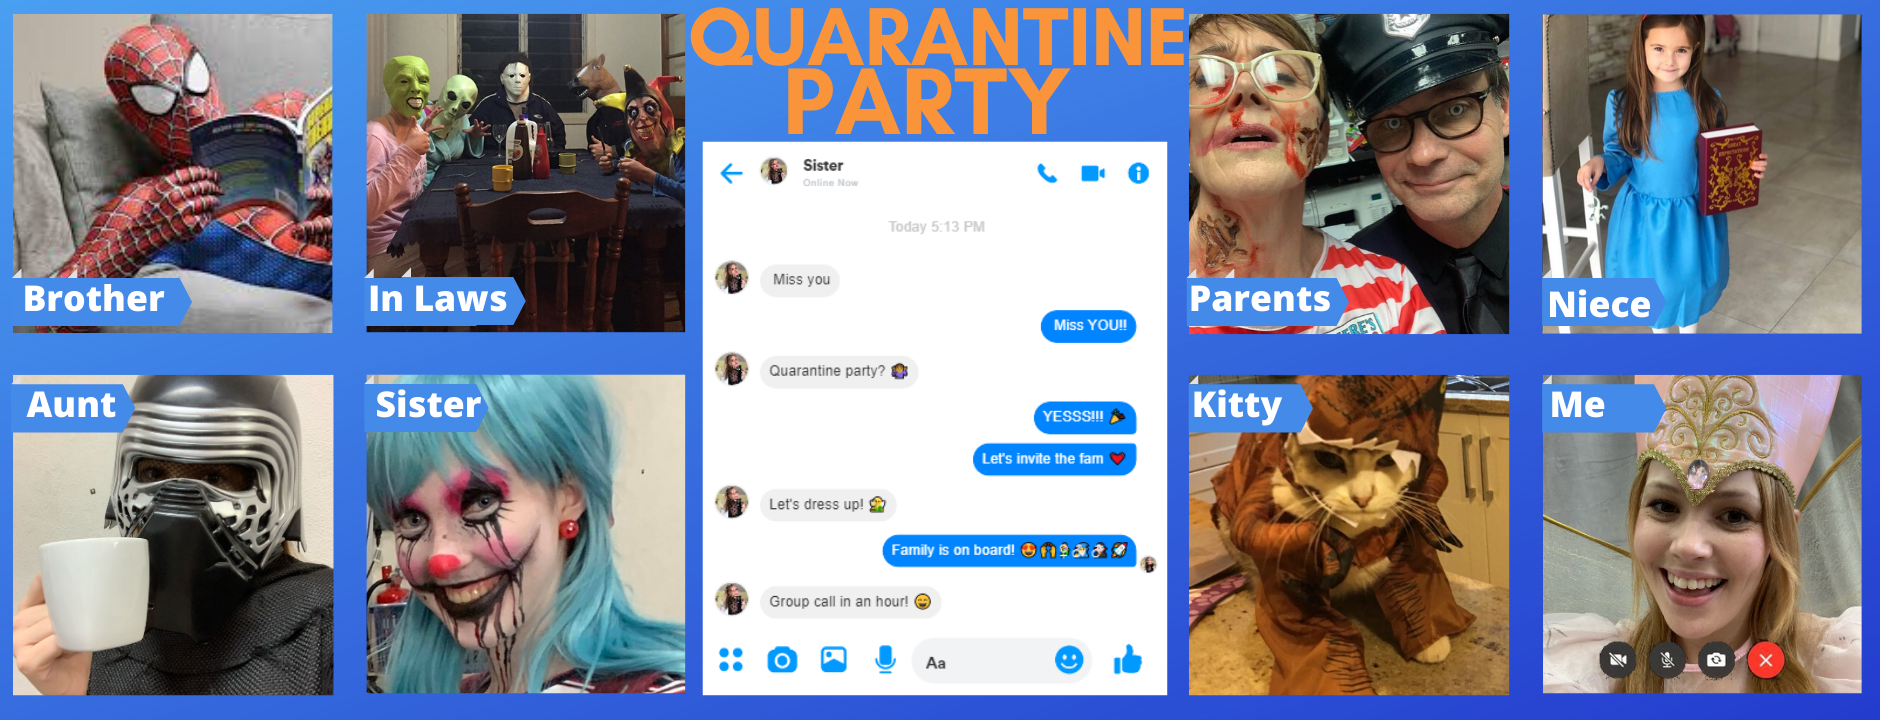 Quarantine party Self Isolation Costume Family Video Call Coronavirus COVID-19